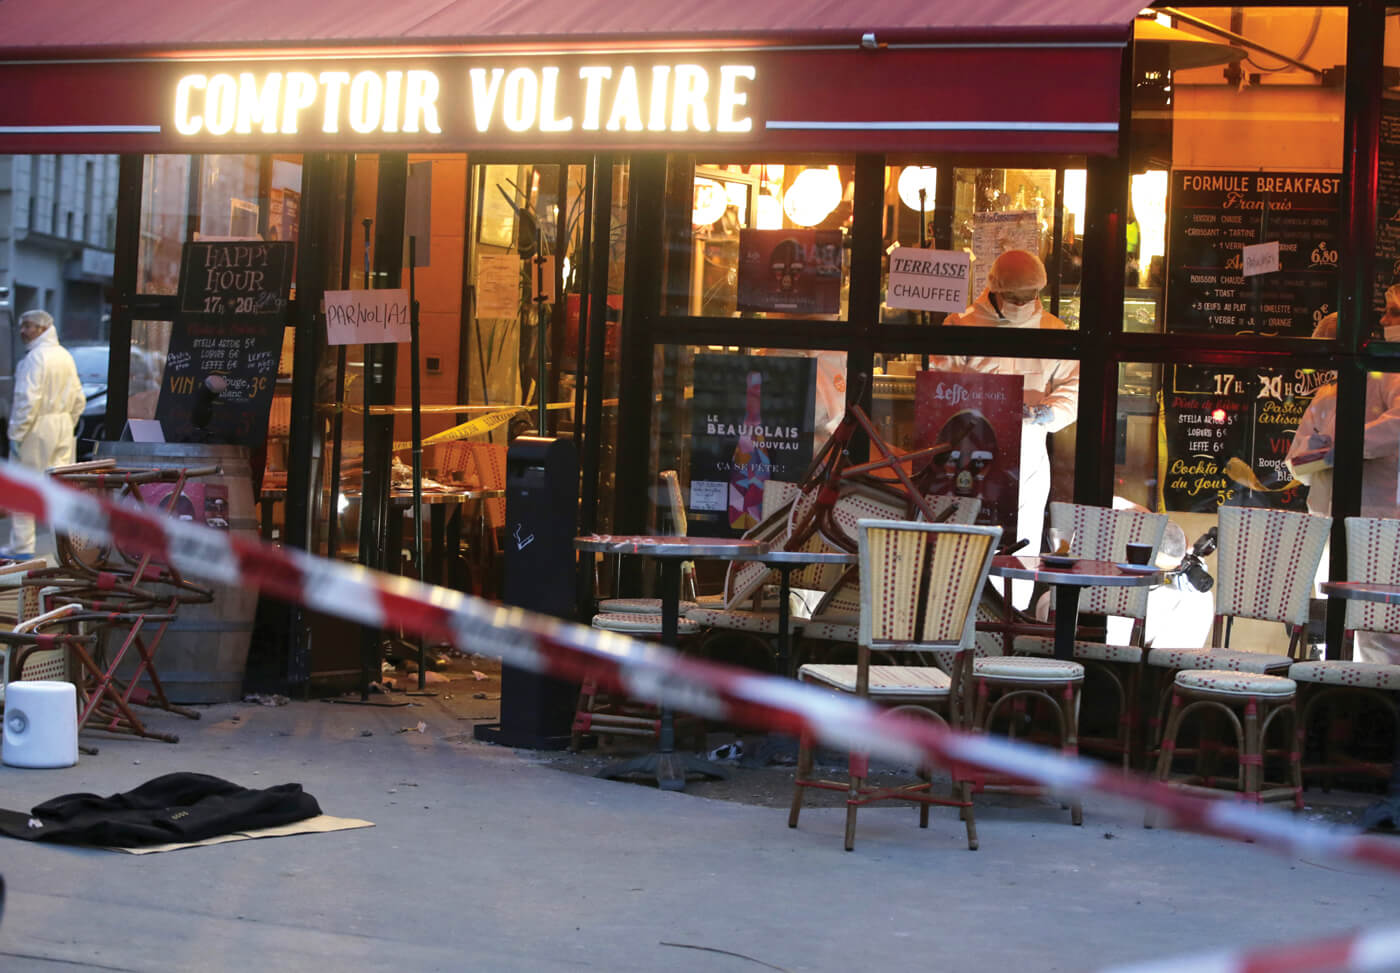 Forensic police search for evidence inside the Comptoir Voltaire café at the site of an attack on November 14, 2015, in Paris, after a series of gun attacks occurred across the city. (Photo: Kenzo Tribouillard/ AFP/Getty Images)